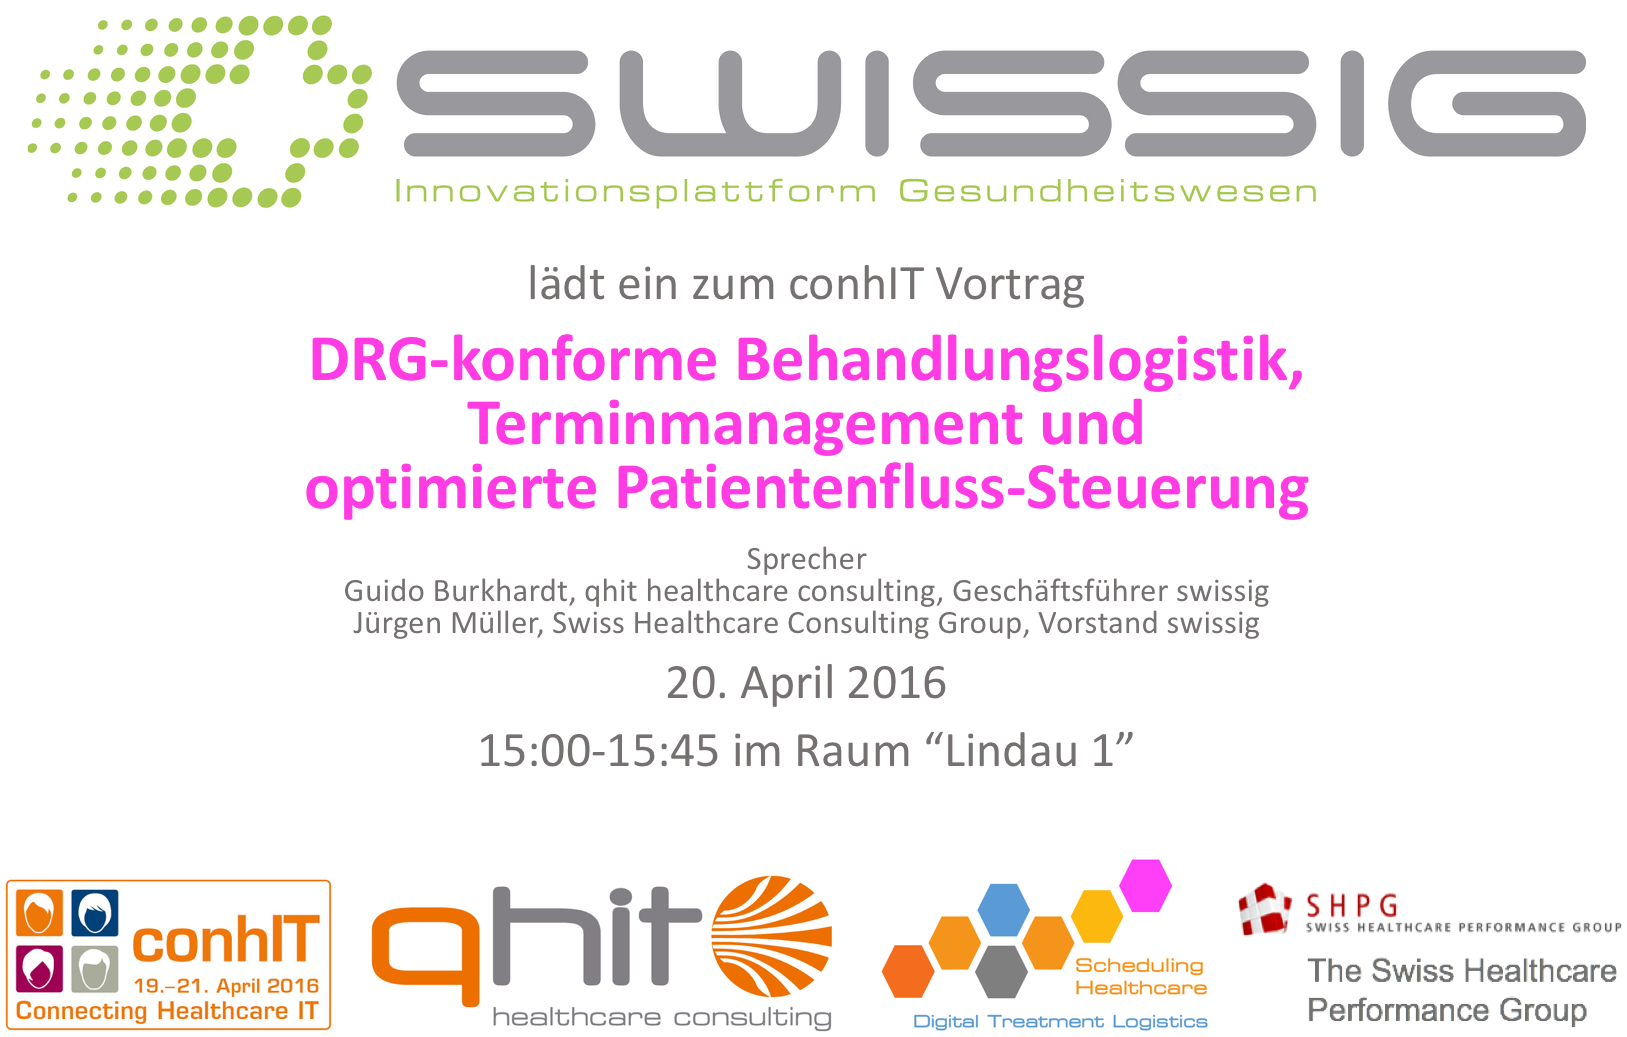 Behandlungslogistik_conhIT2016_randlos